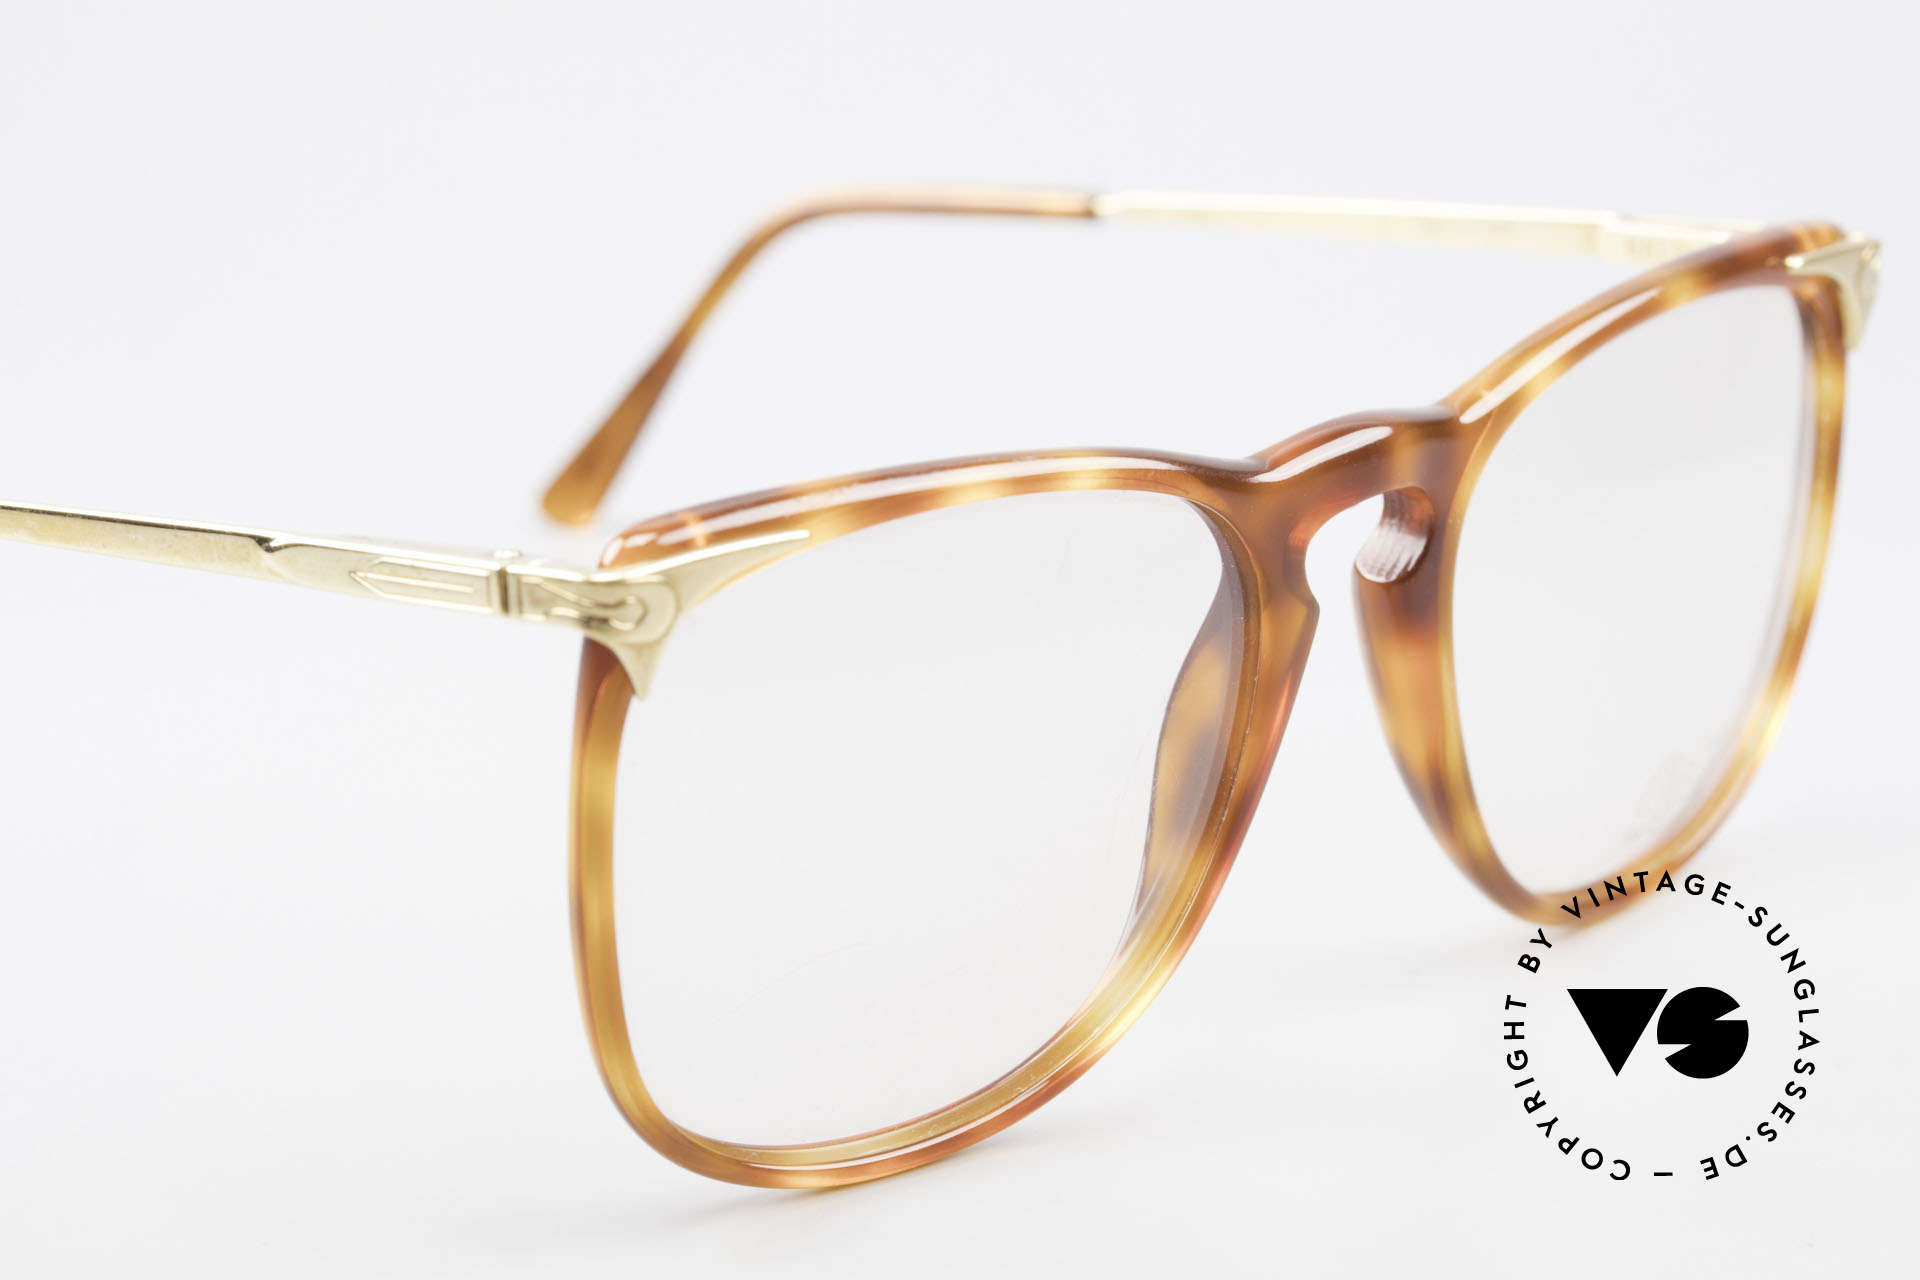 Persol Cellor 3 Ratti Old Vintage Eyeglasses 80's, NO RETRO glasses, but a 30 years old Original, Made for Men and Women